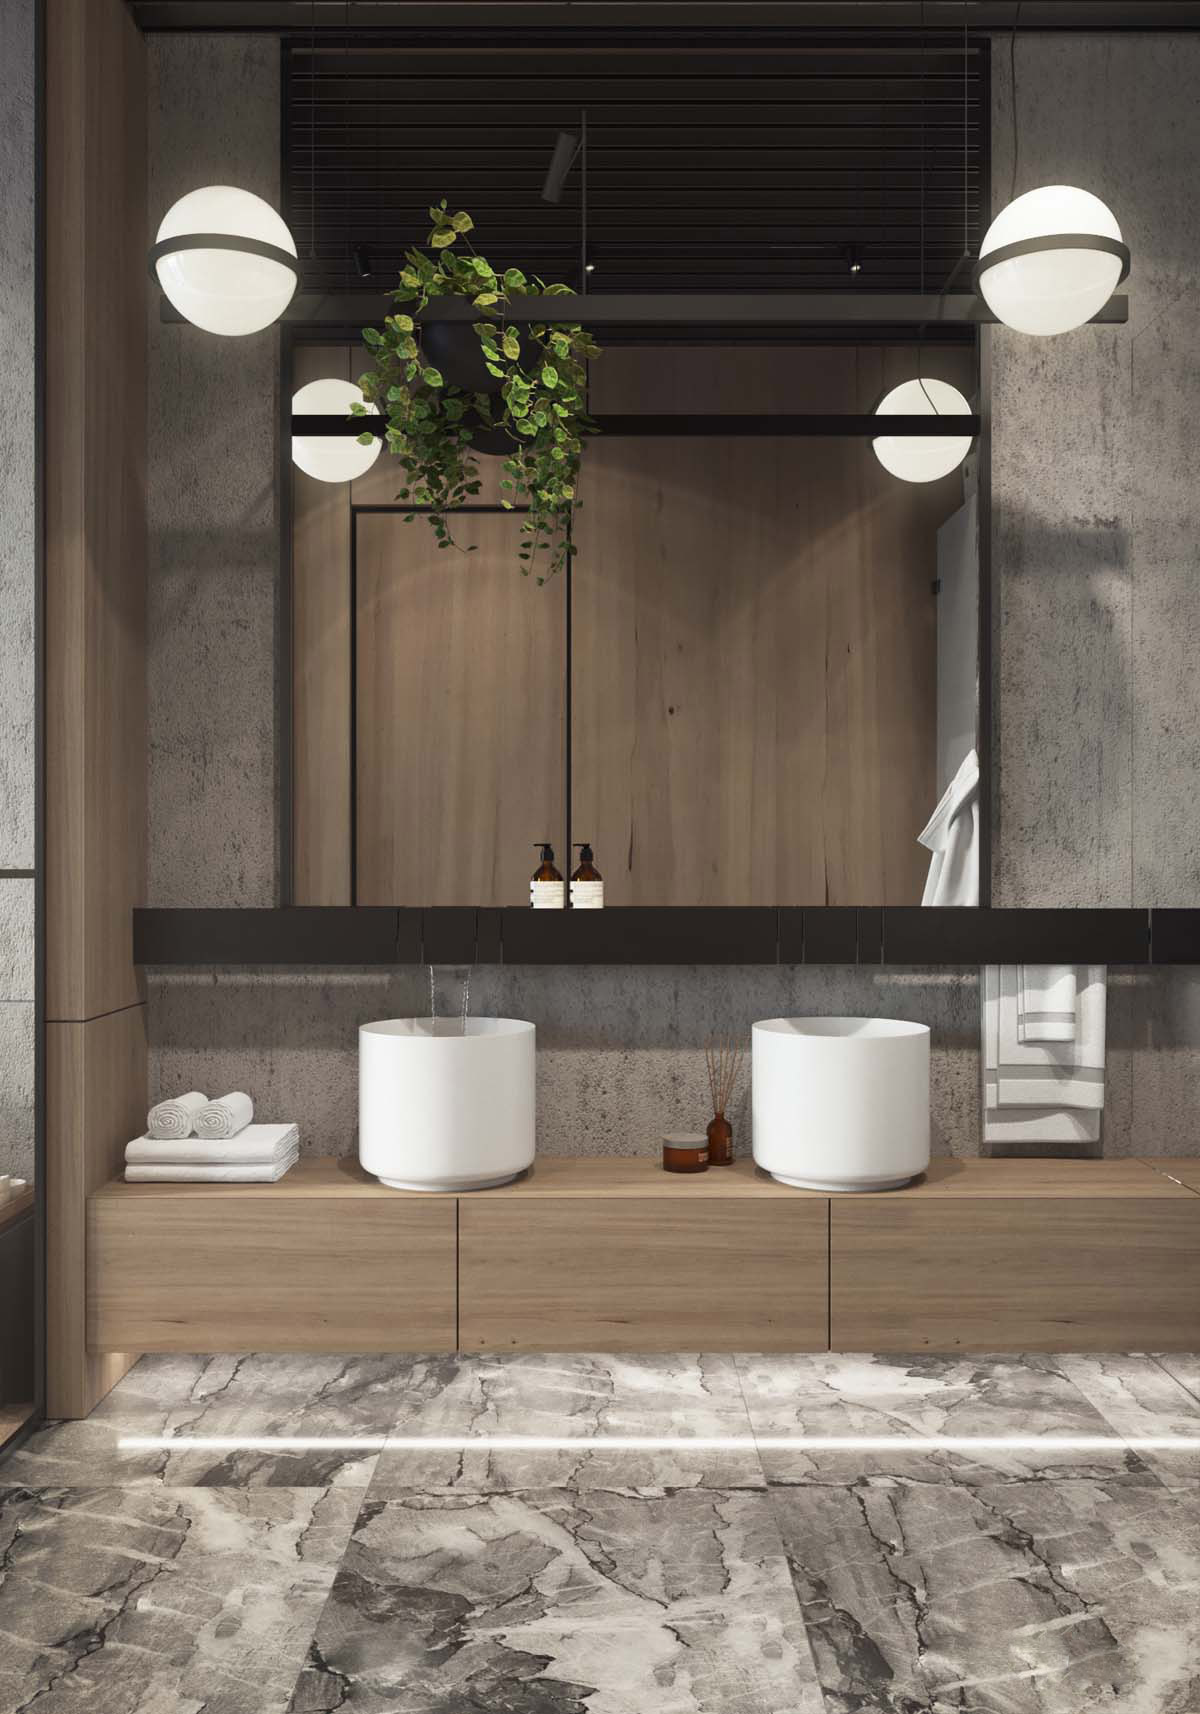 51 Industrial Style Bathrooms Plus Ideas & Accessories You Can Copy From Them images 14